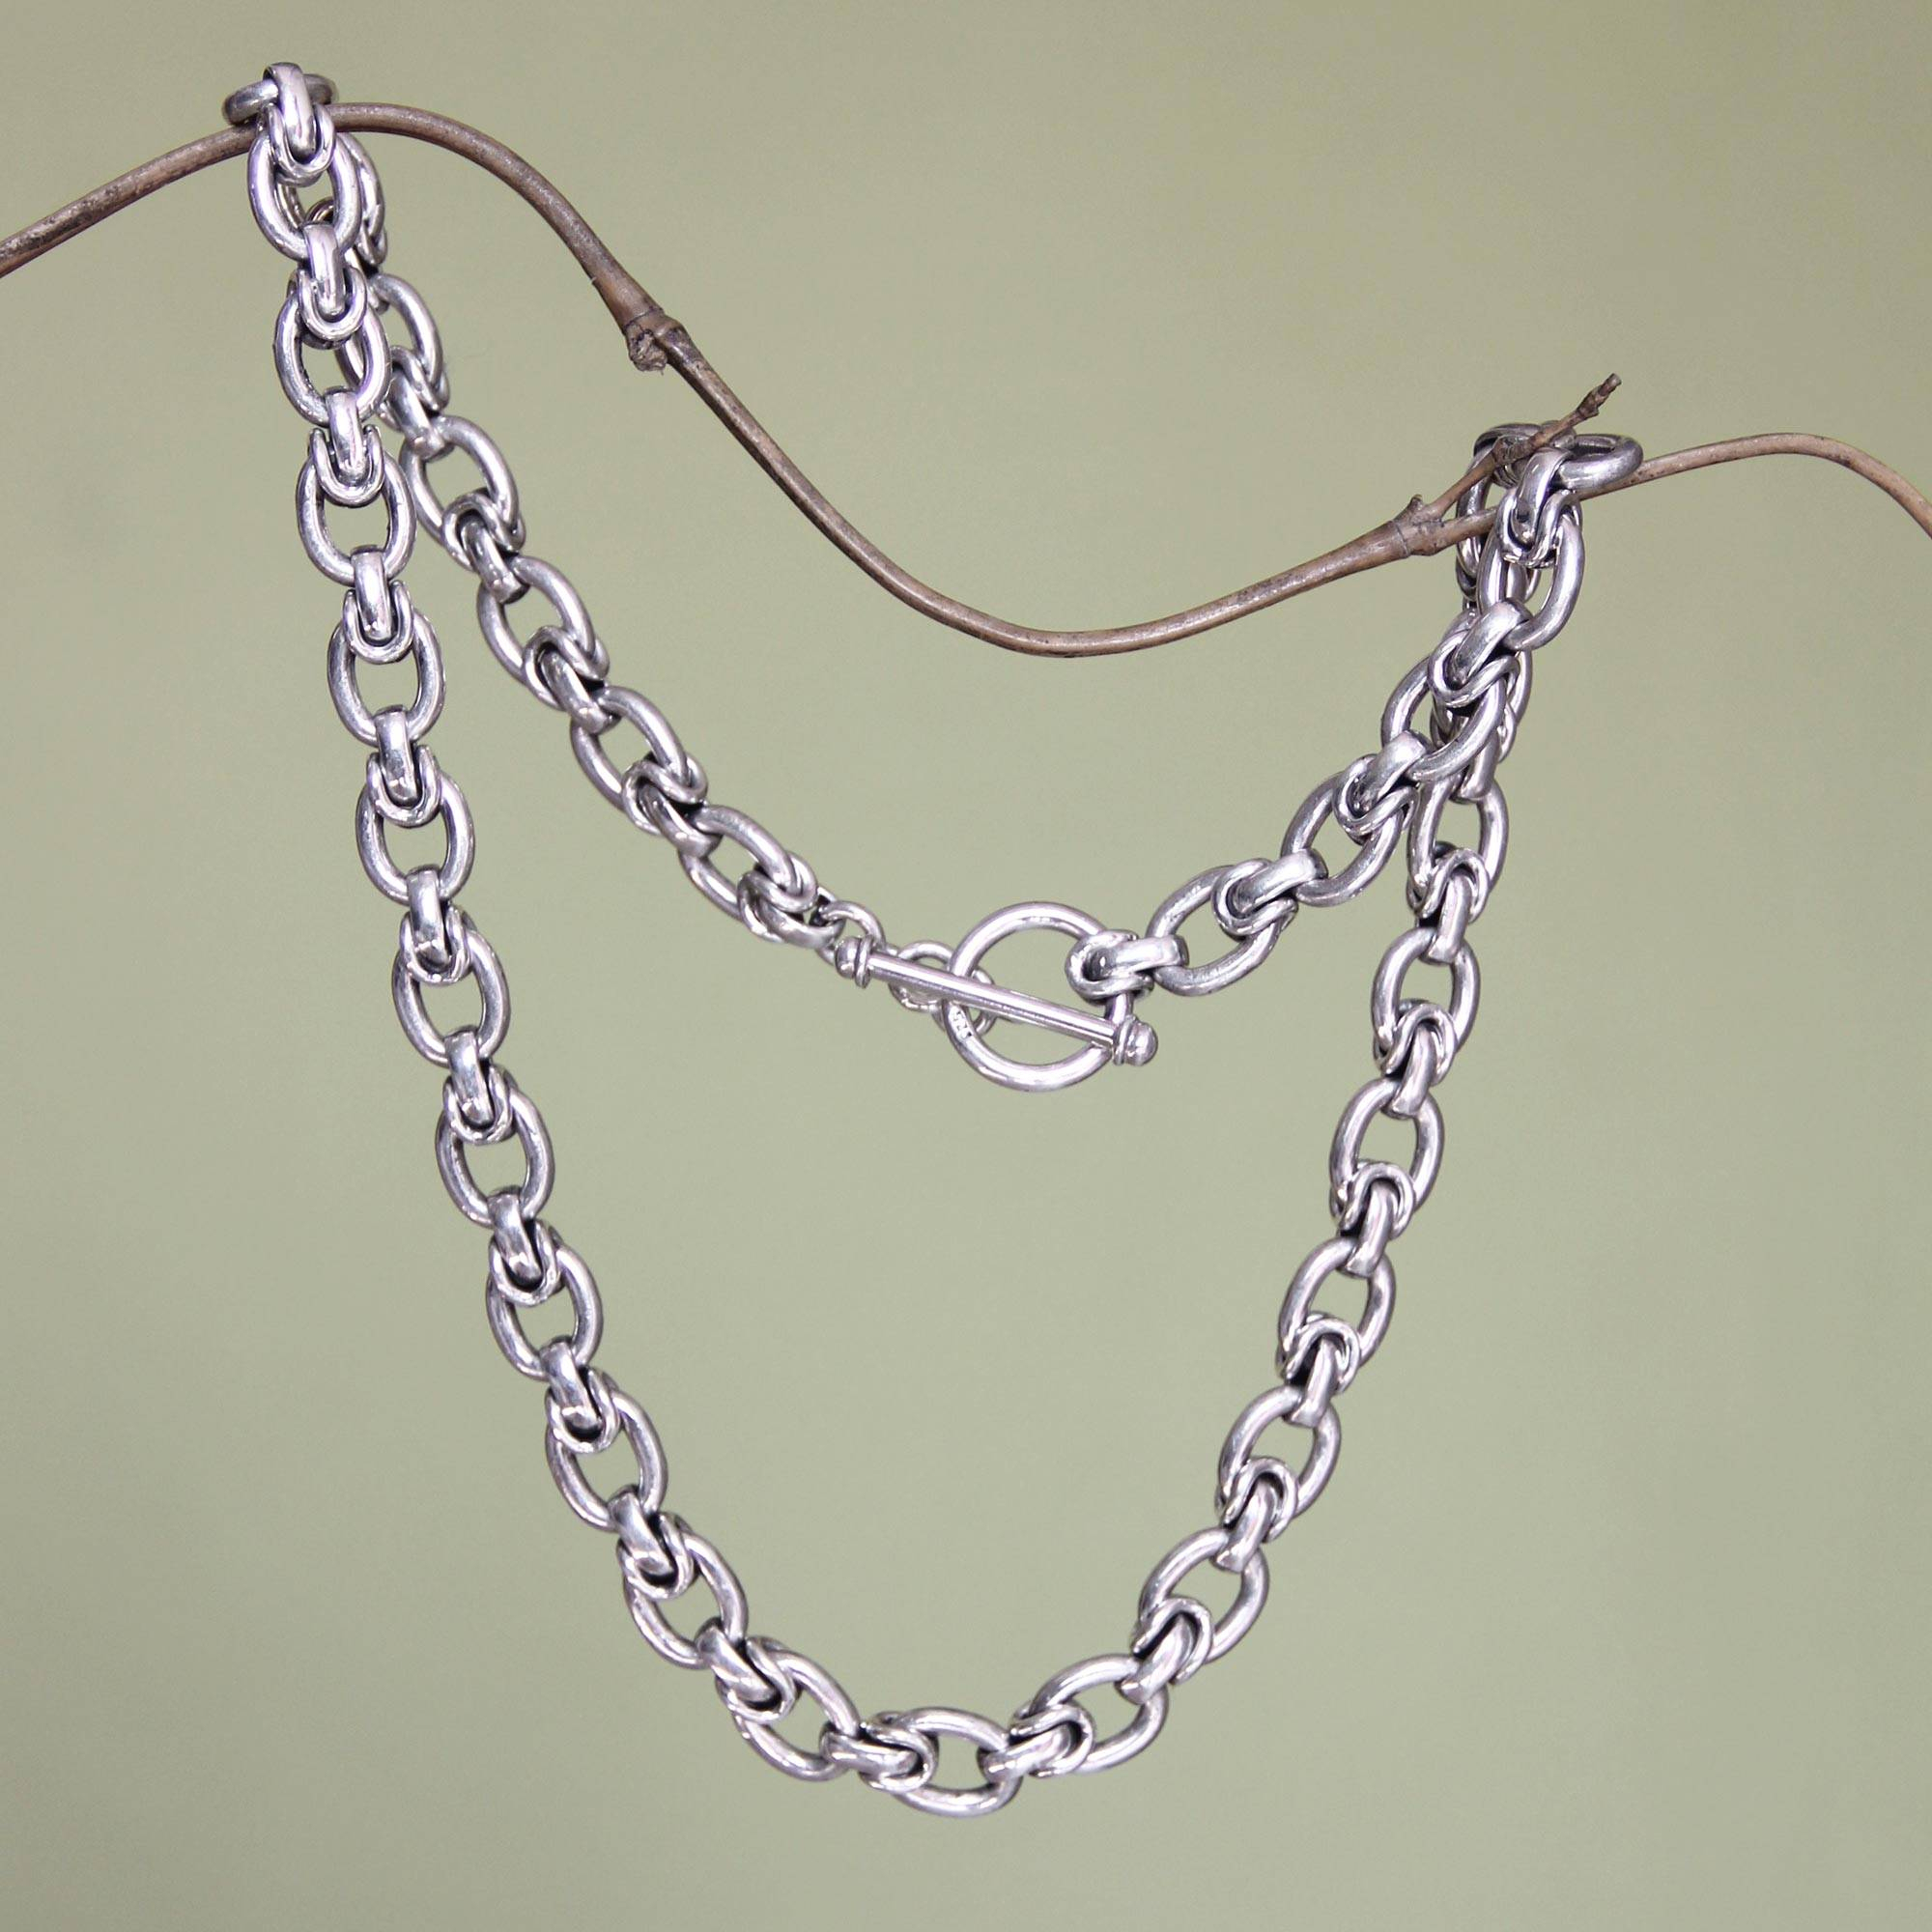 Men's Sterling Silver Chain Necklace, 'brave Knight' With Regard To Most Popular Silver Chain Necklaces (View 15 of 25)